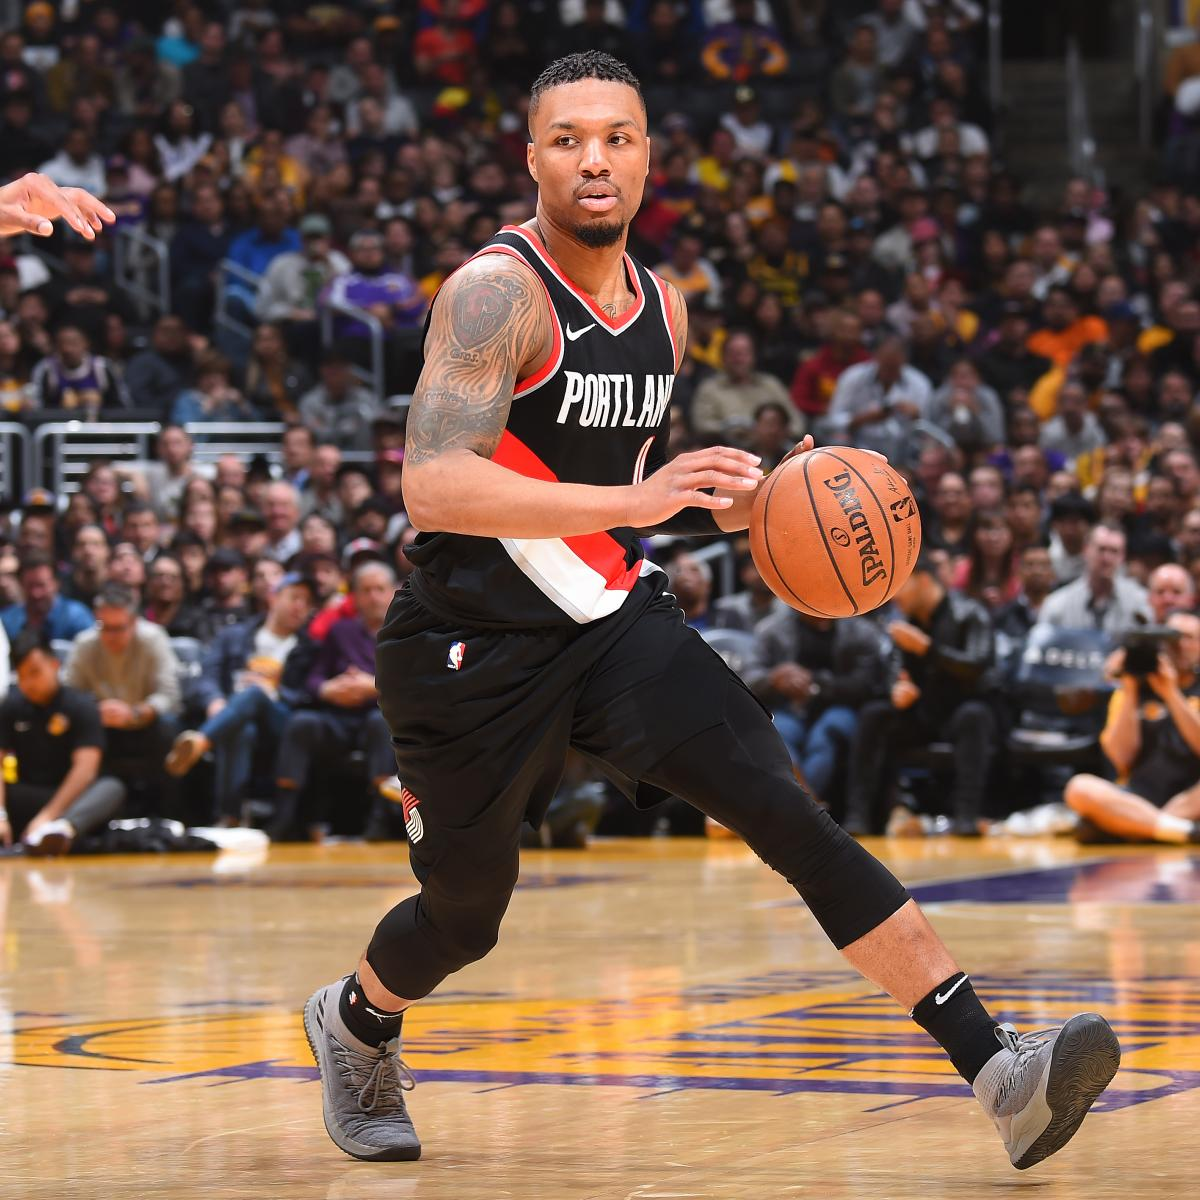 Blazers Game 3: Damian Lillard's 39 Points Lead Blazers To Comeback Win Vs